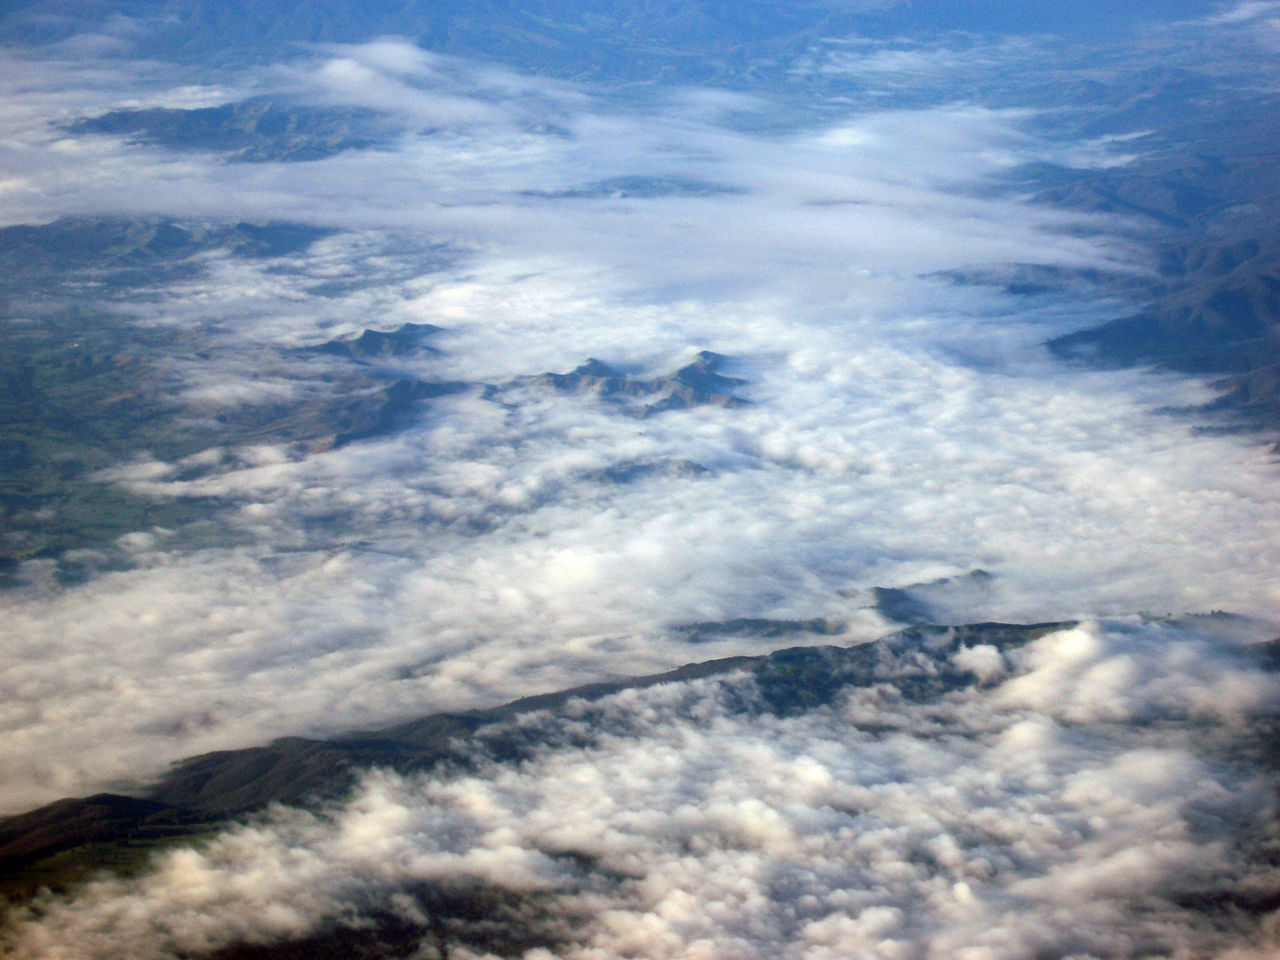 an aerial view of a range of mountains Aerial View Atmosphere Cloud Clouded Clouds Cloudscape Cloudy Earth From A Plane Window Landscape Looking Down Mountain Mountains Planet Range Sky Topography Topology